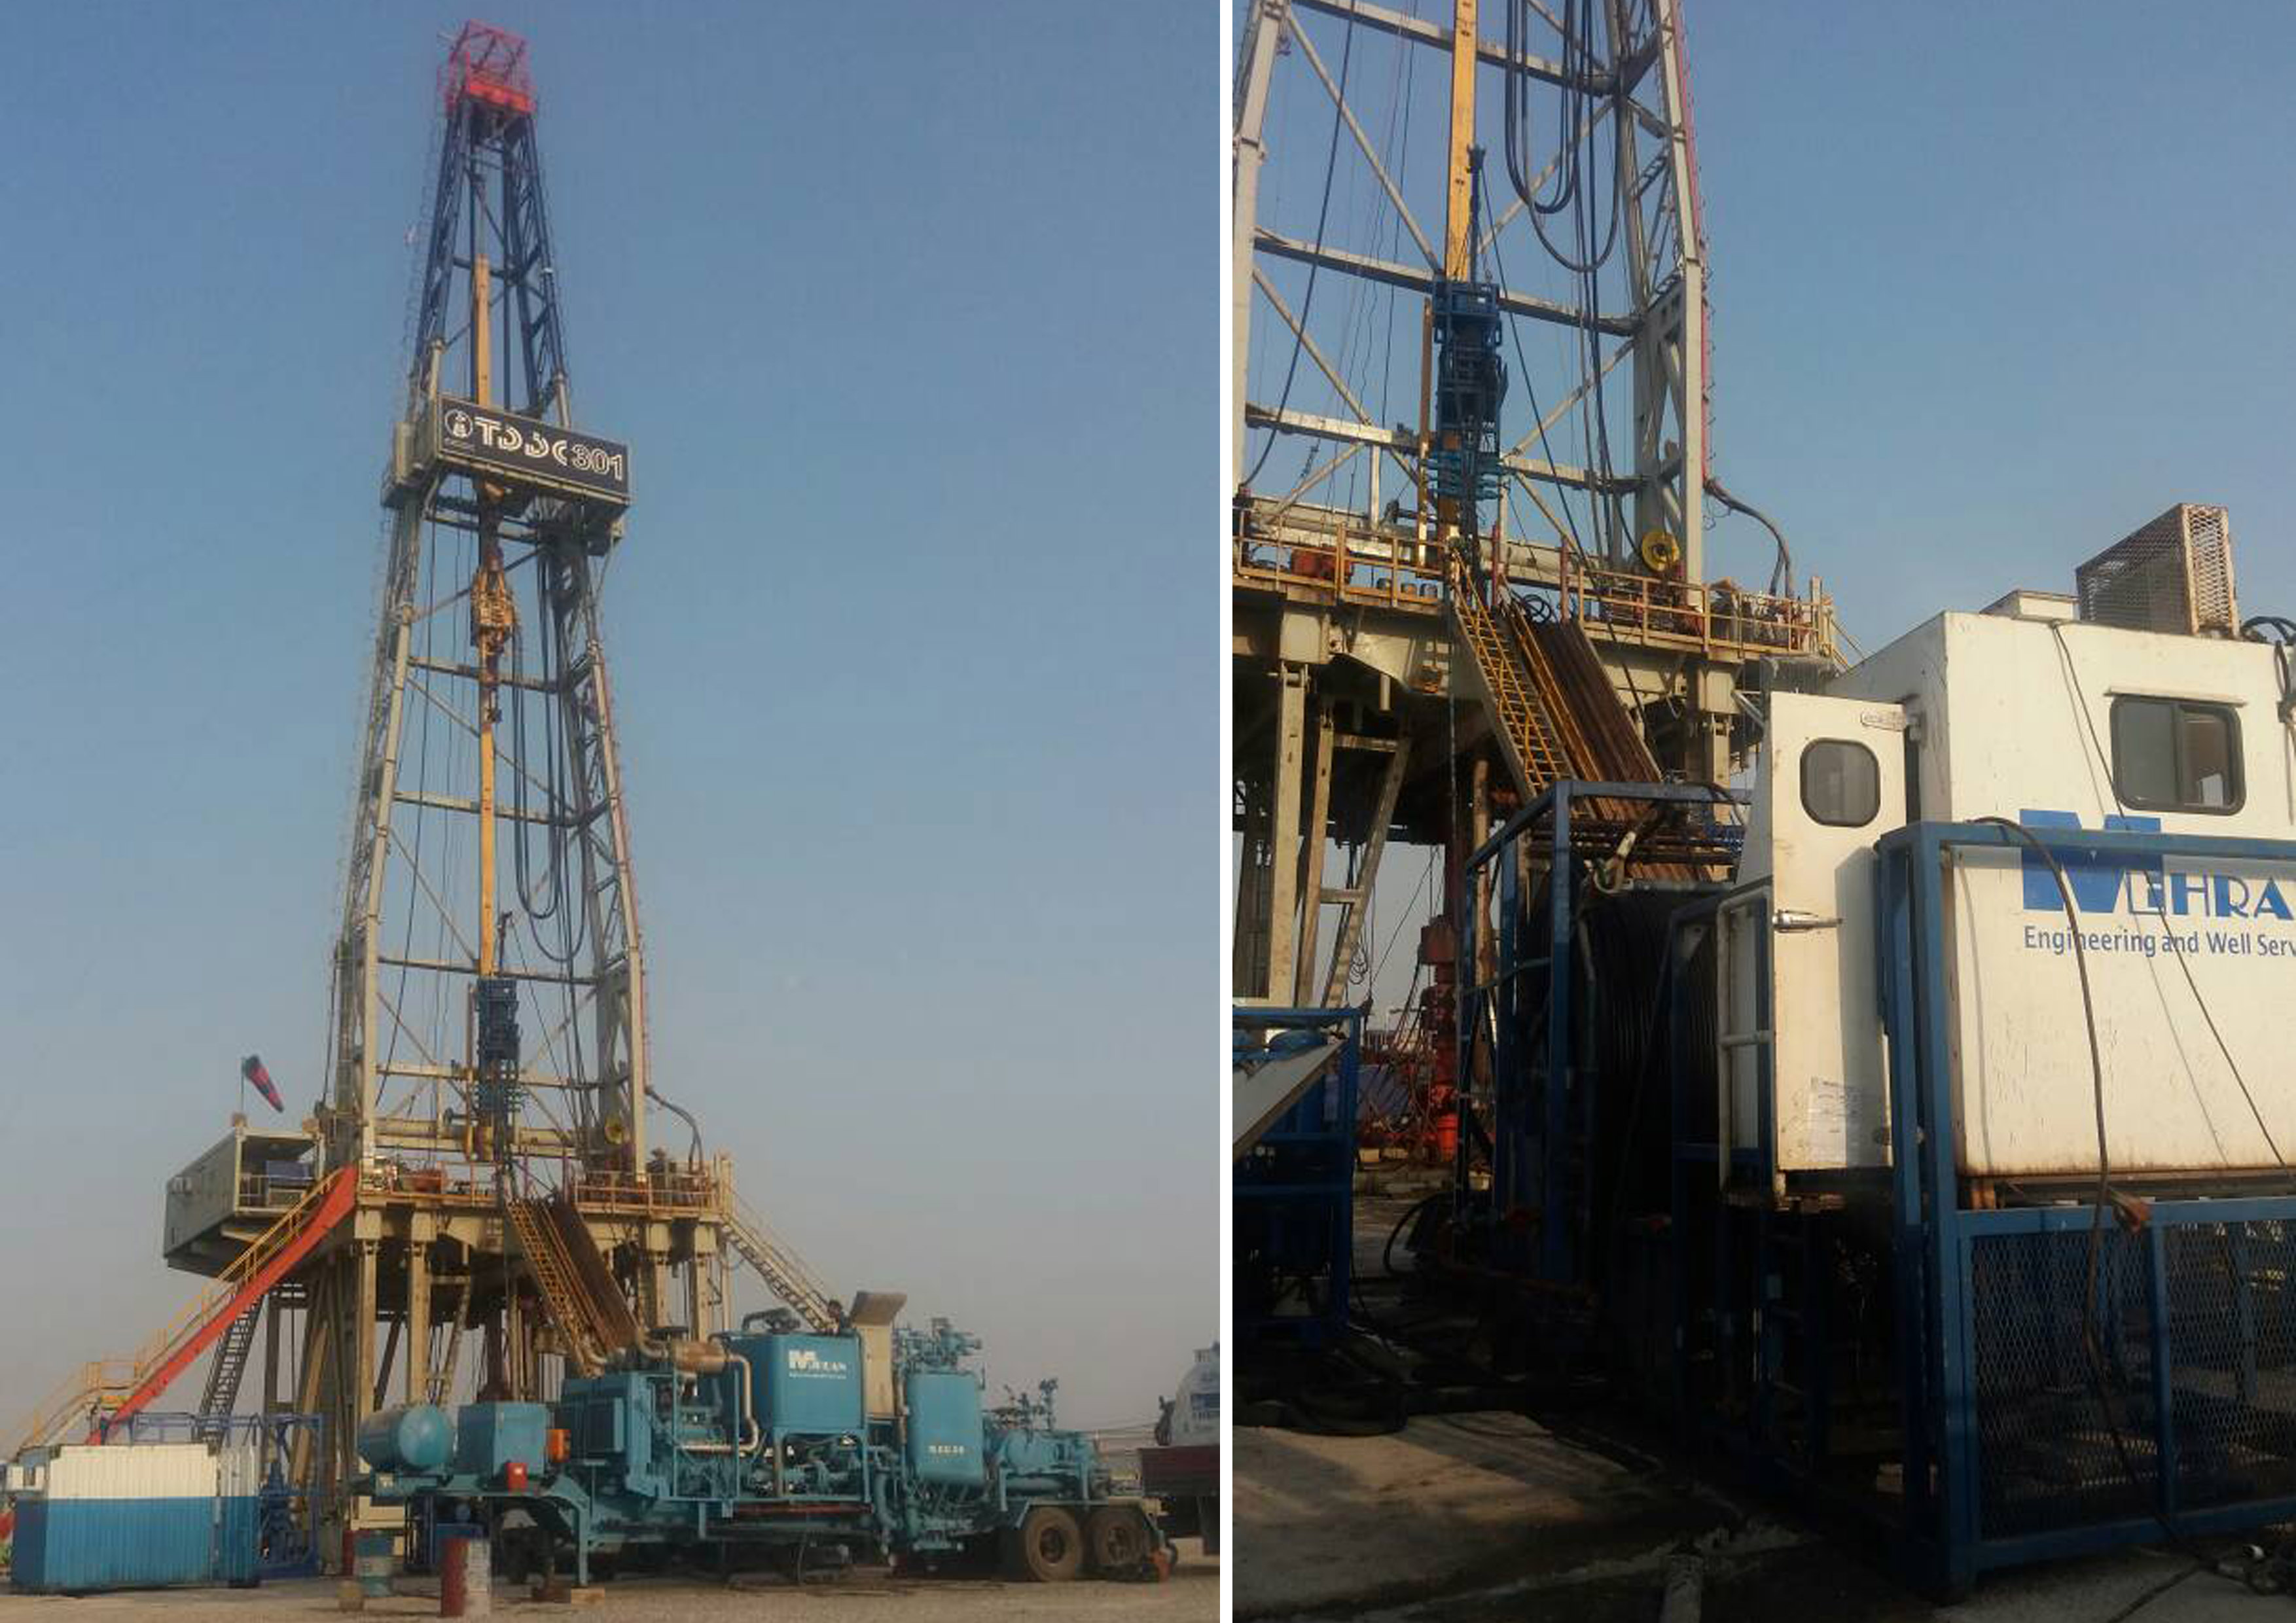 Mehran's first Coiled Tubing Operation in Onshore, TDDC-301 Rig, Well AZNS-115